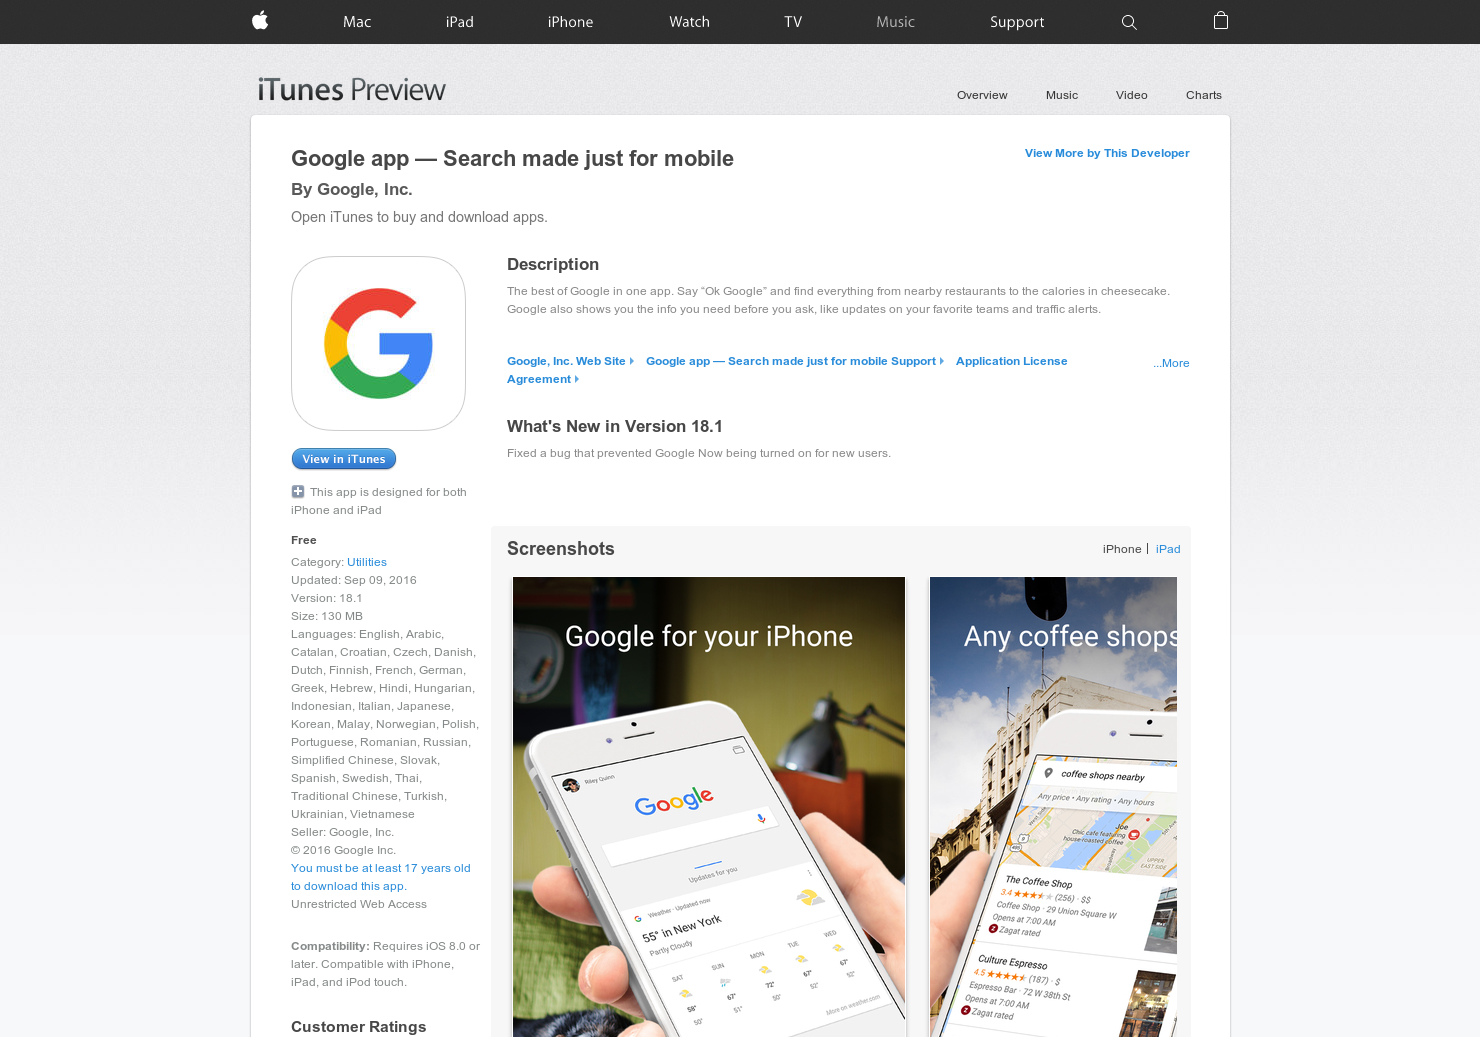 Google app for iOS 5 0 - New release completely rebuilt and